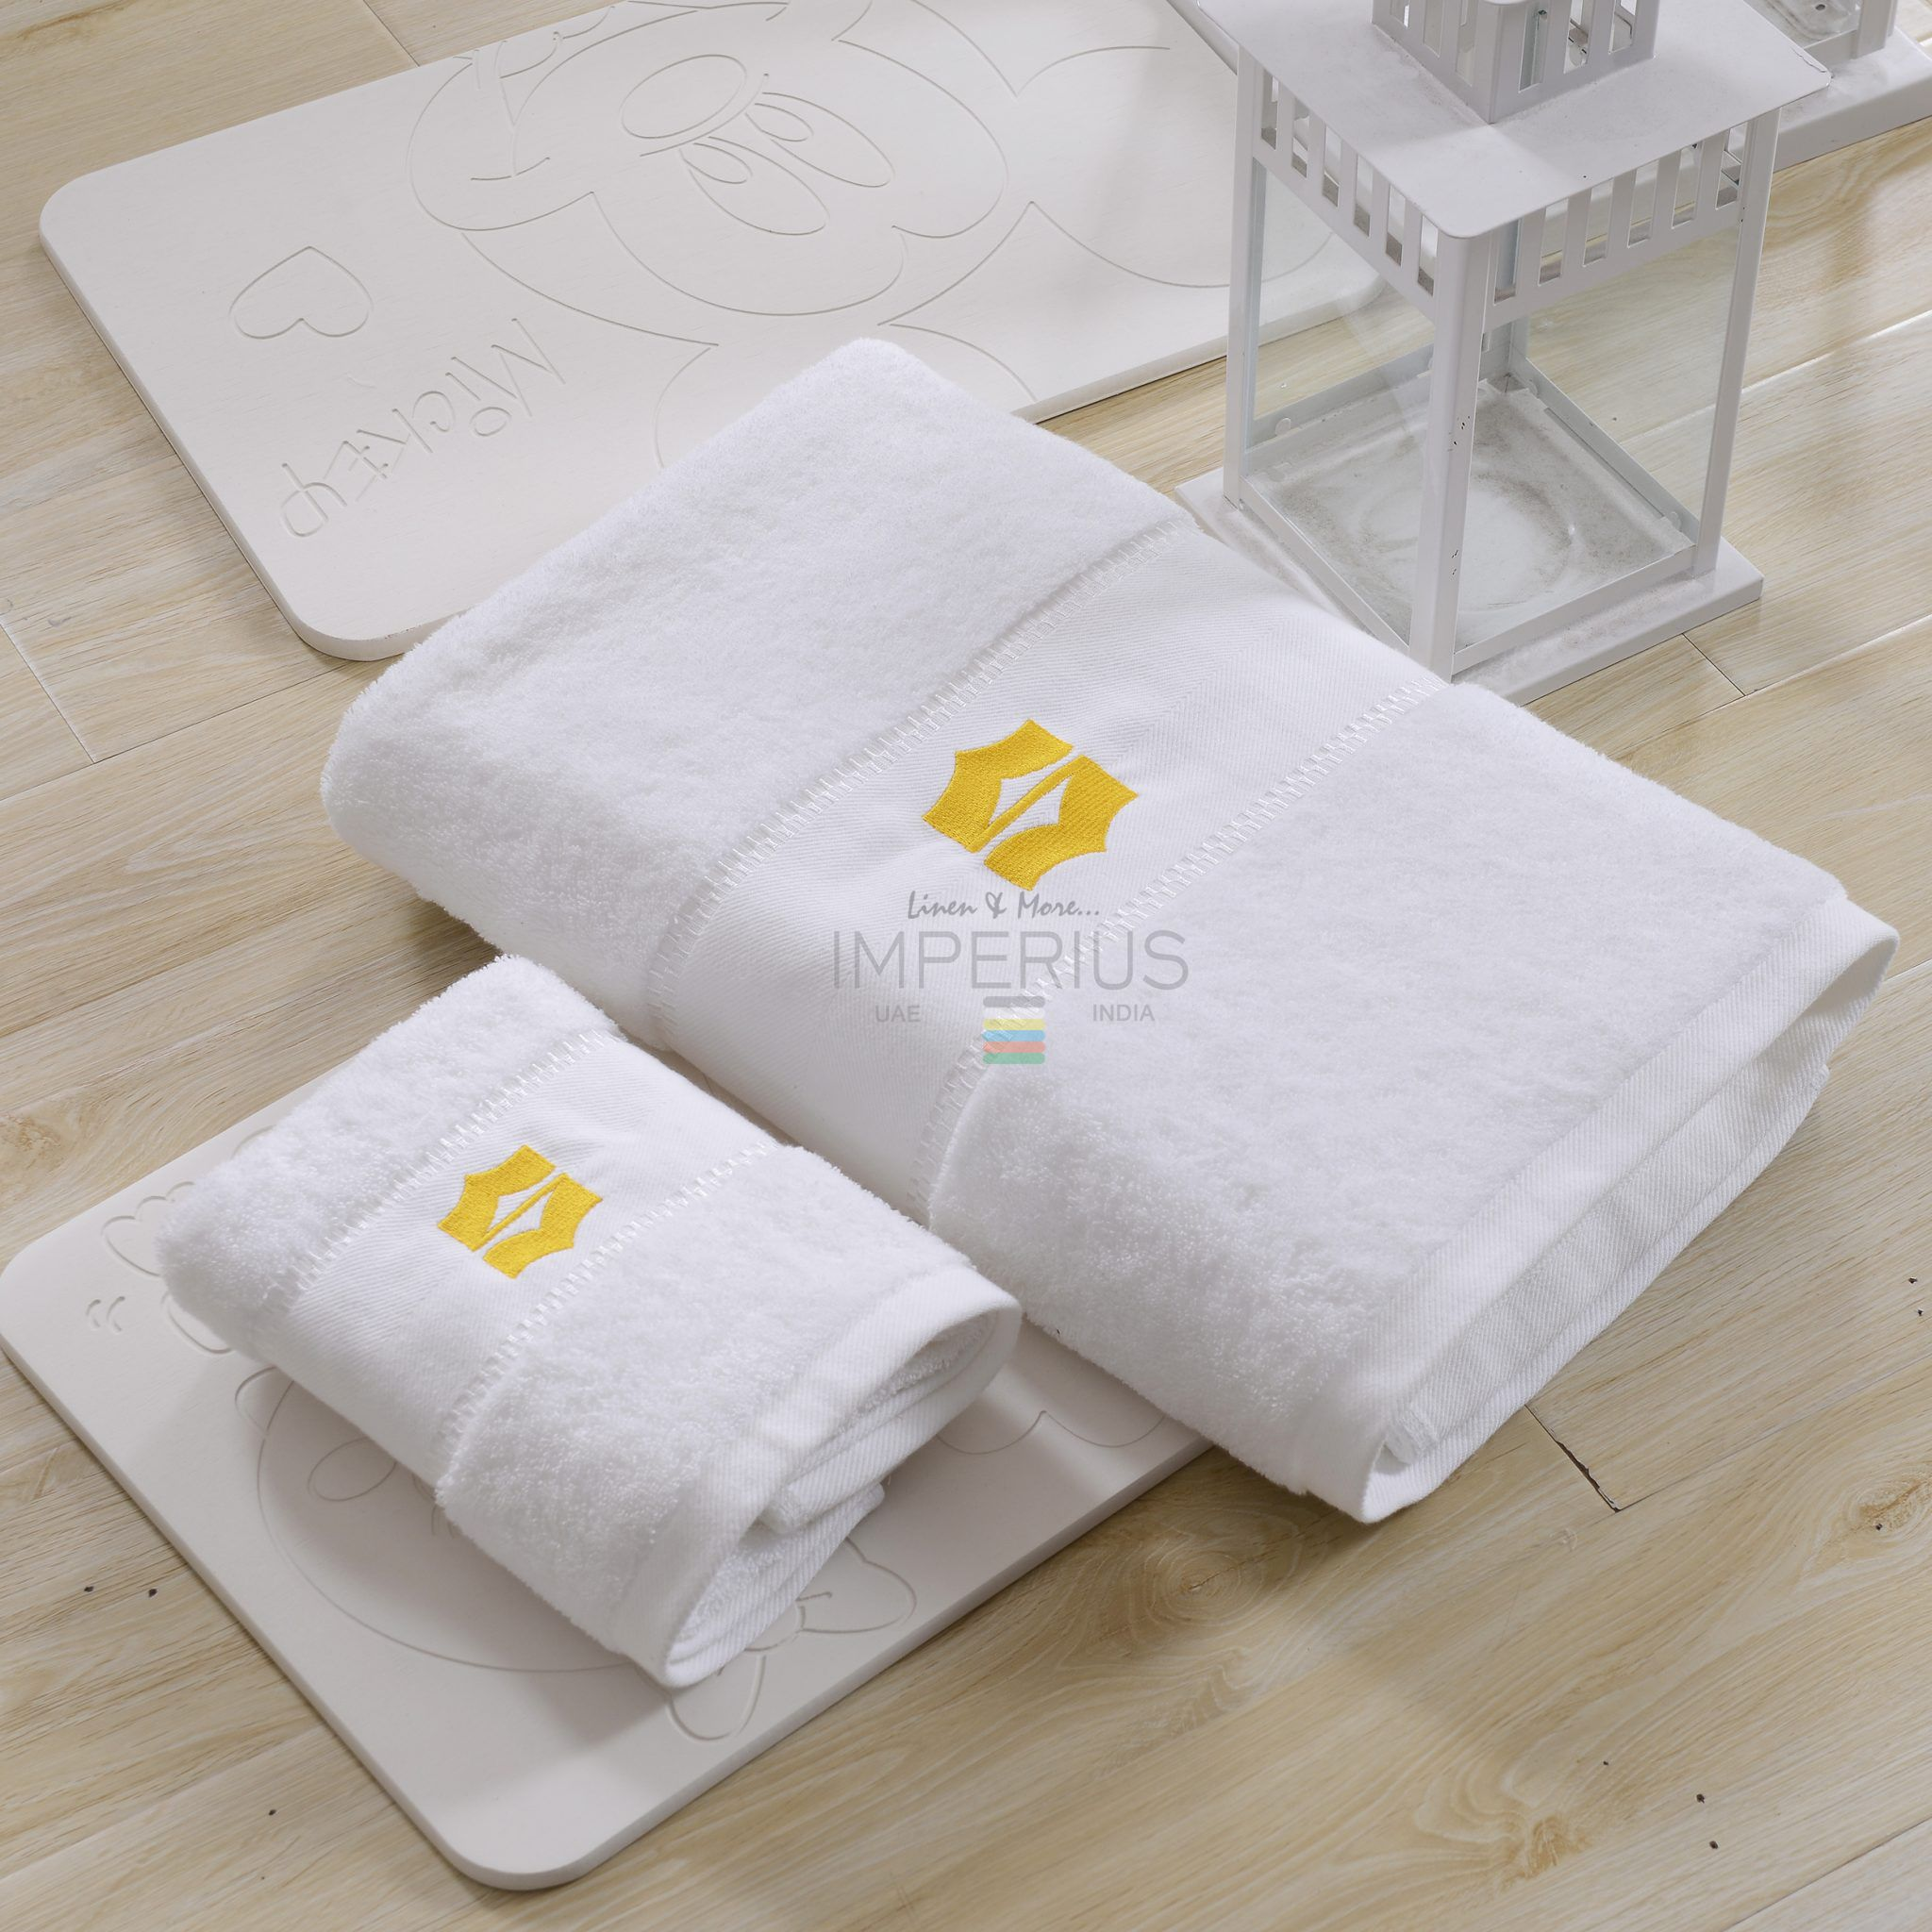 Shop combed cotton bath towel for your hotel from Imperius